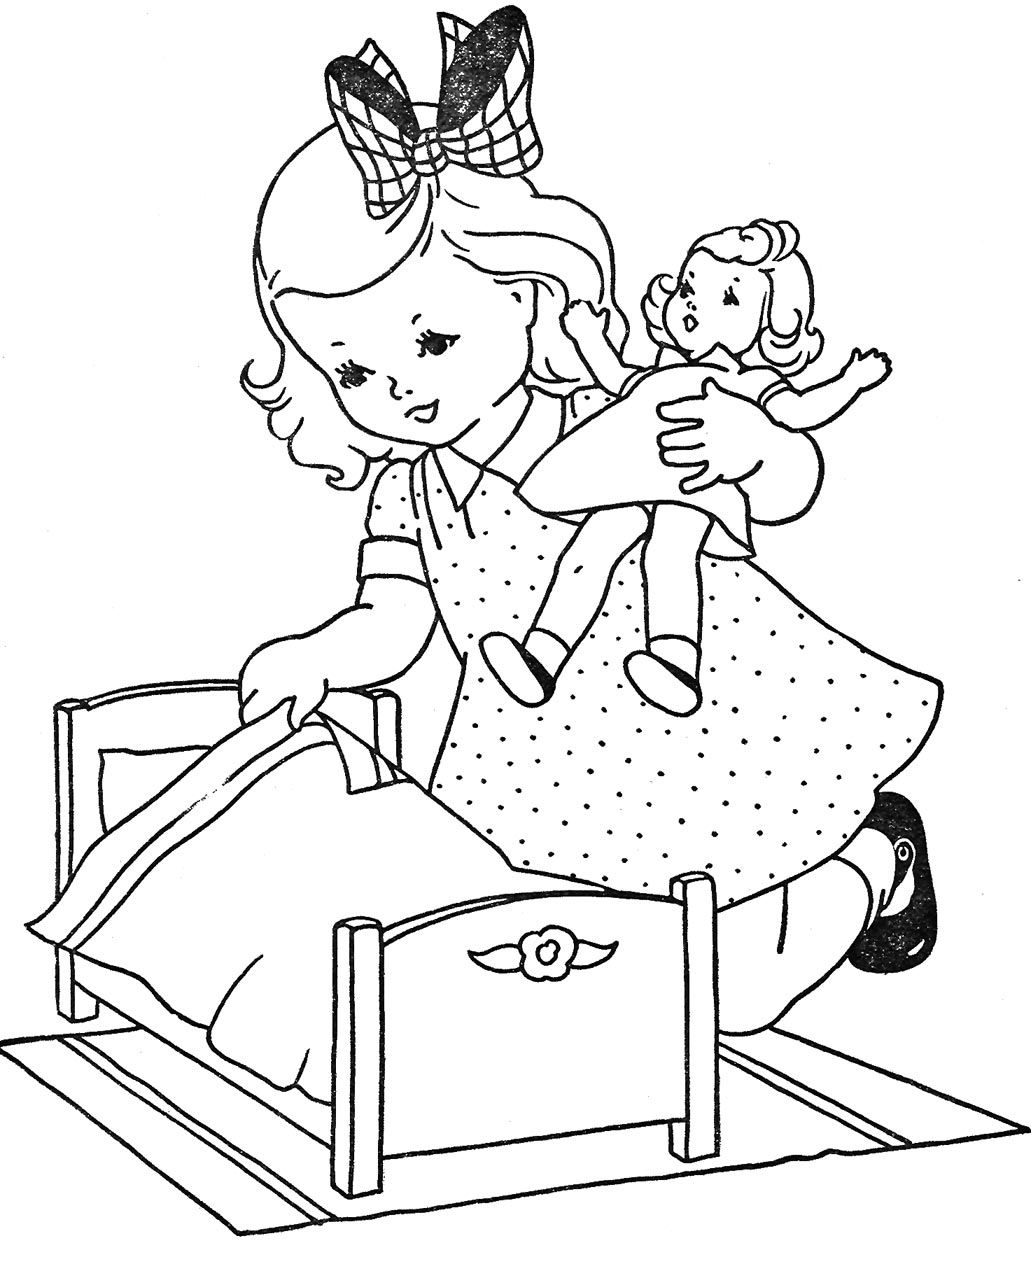 coloring pictures to color for kids bunny coloring pages best coloring pages for kids to for pictures kids color coloring